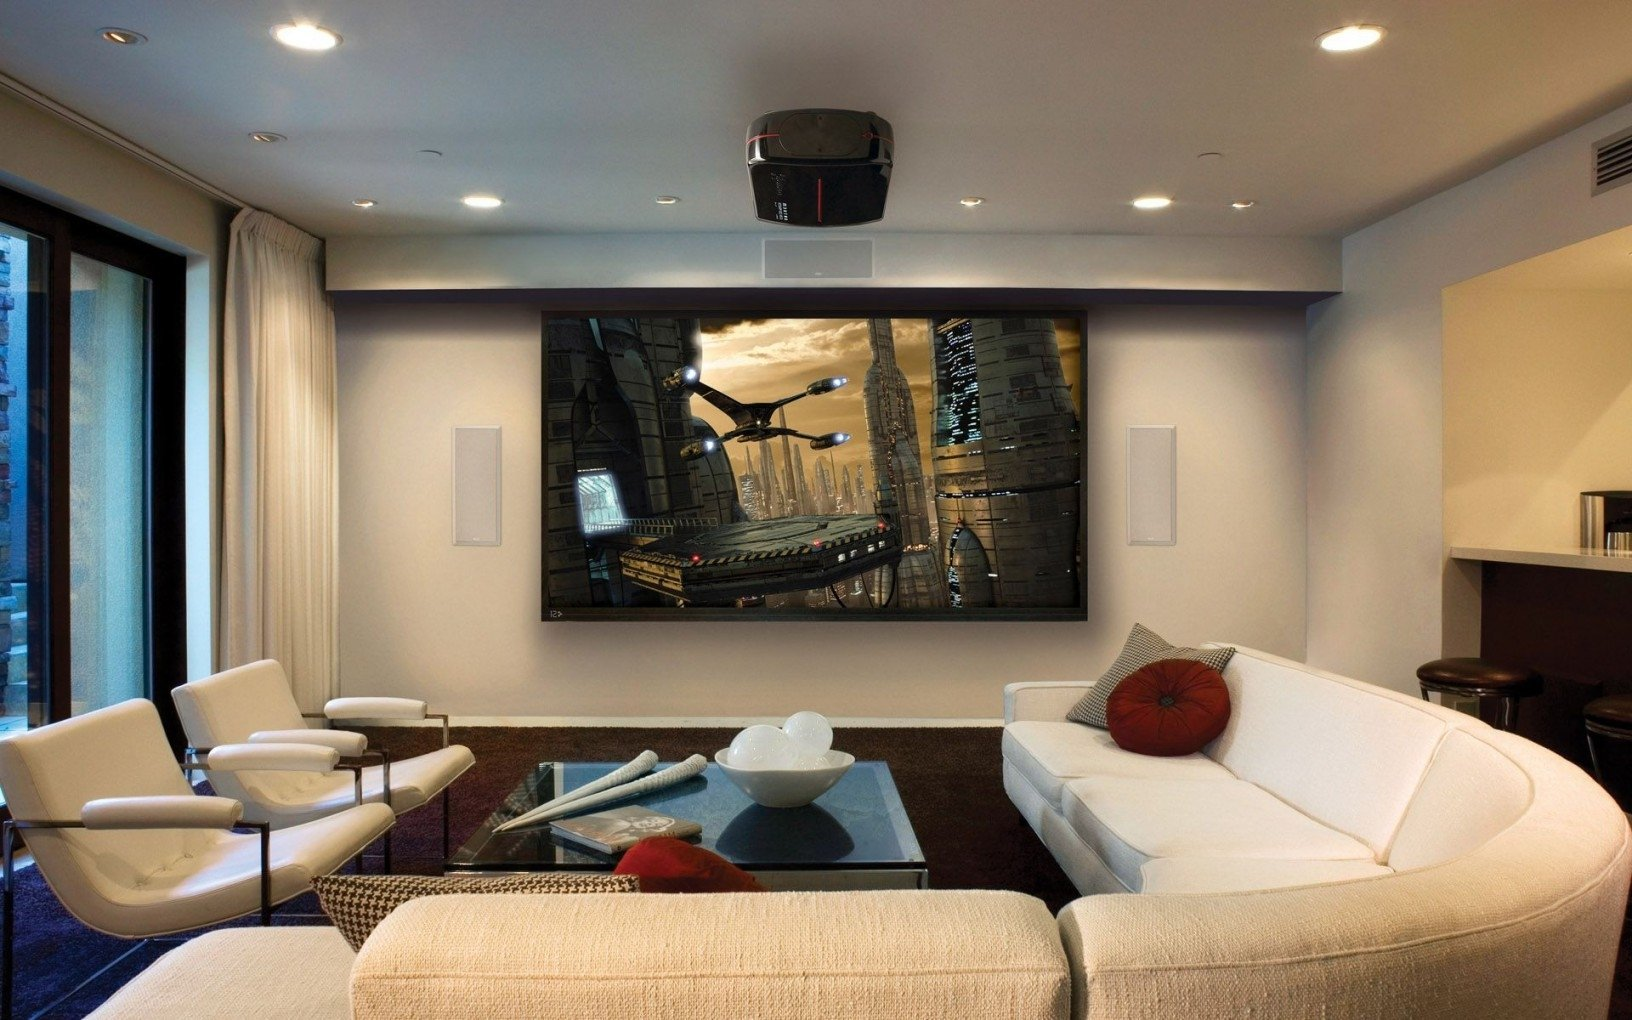 10 Trendy Family Room Ideas With Tv living room family room ideas pinterest tv room design living